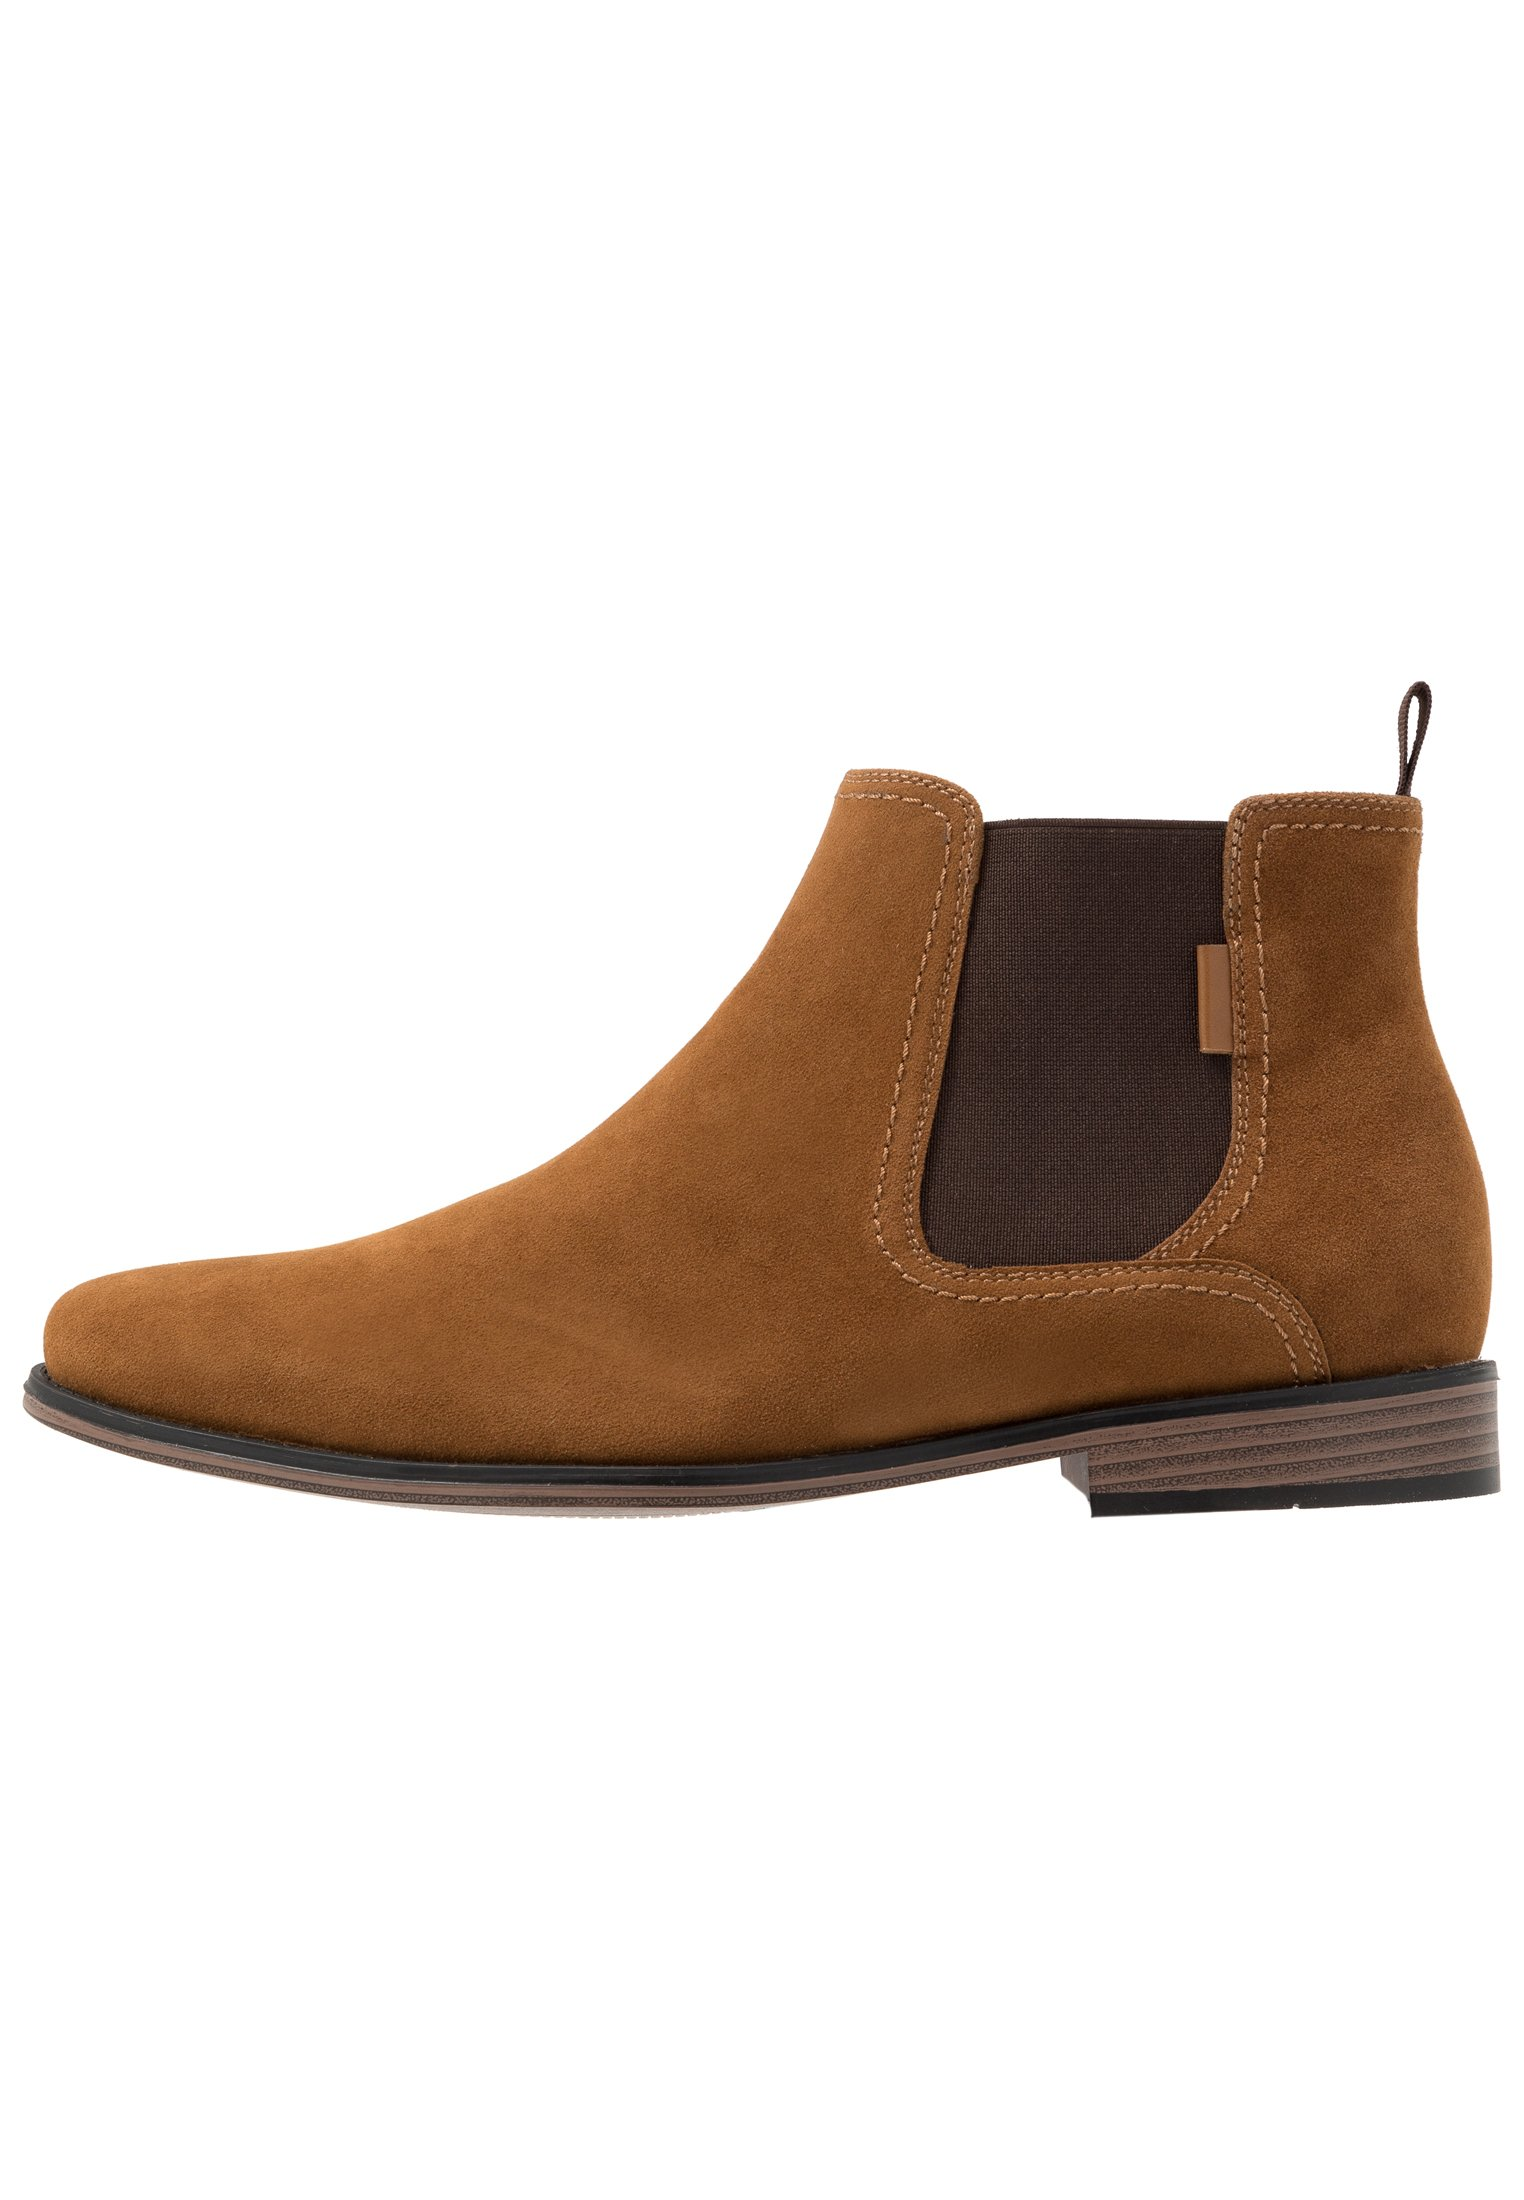 bottines chelsea homme moutarde